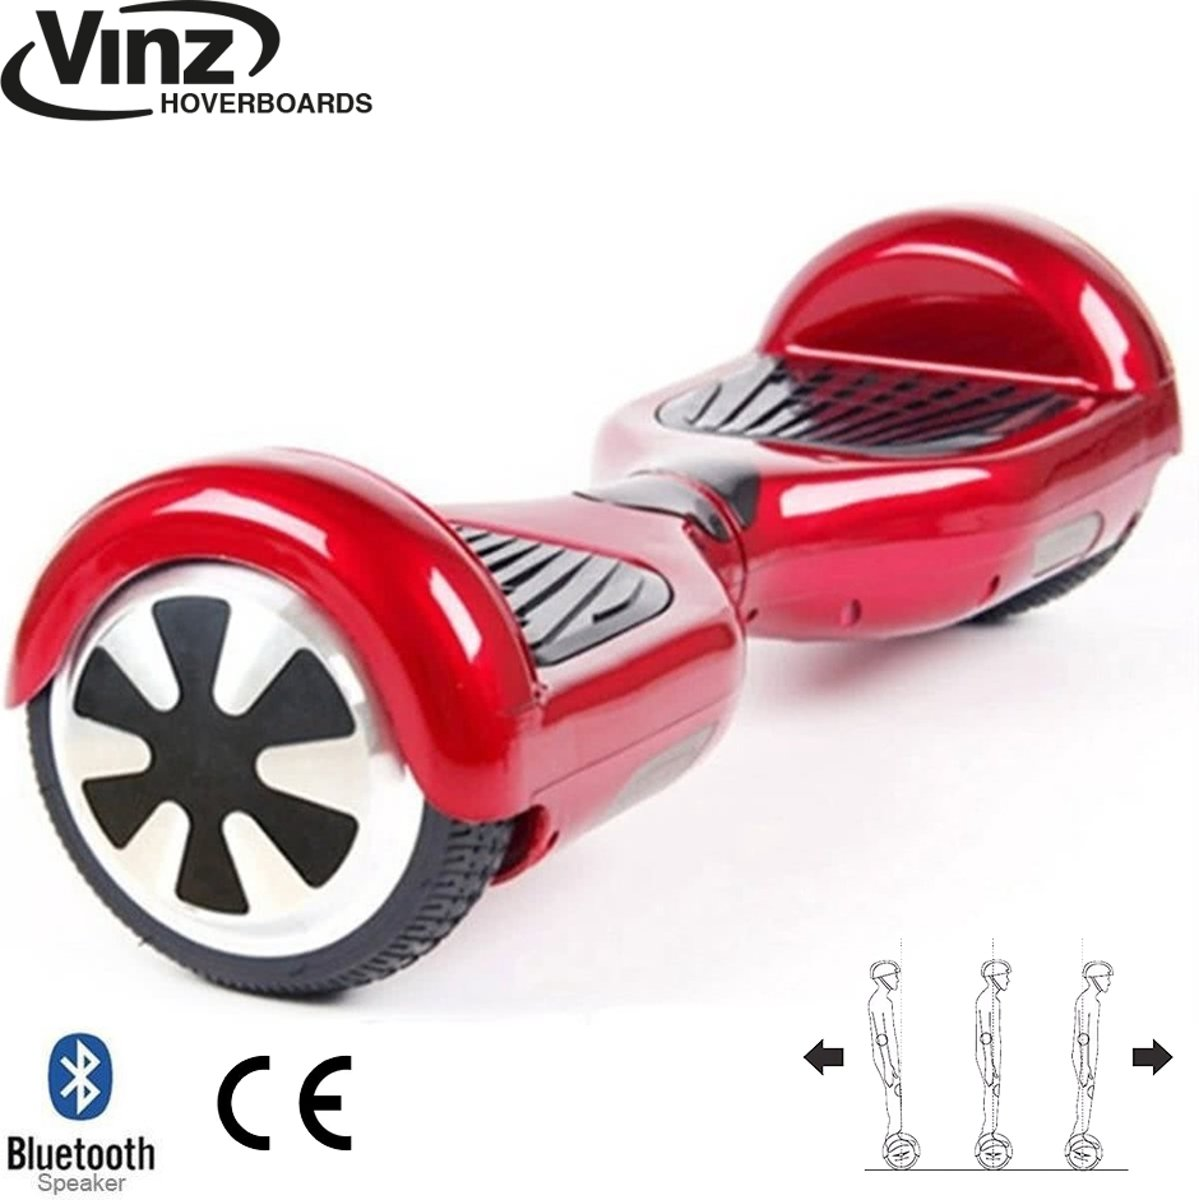 Vinz Hoverboard incl. Bluetooth Boxen & LED 6,5 Inch - Rood